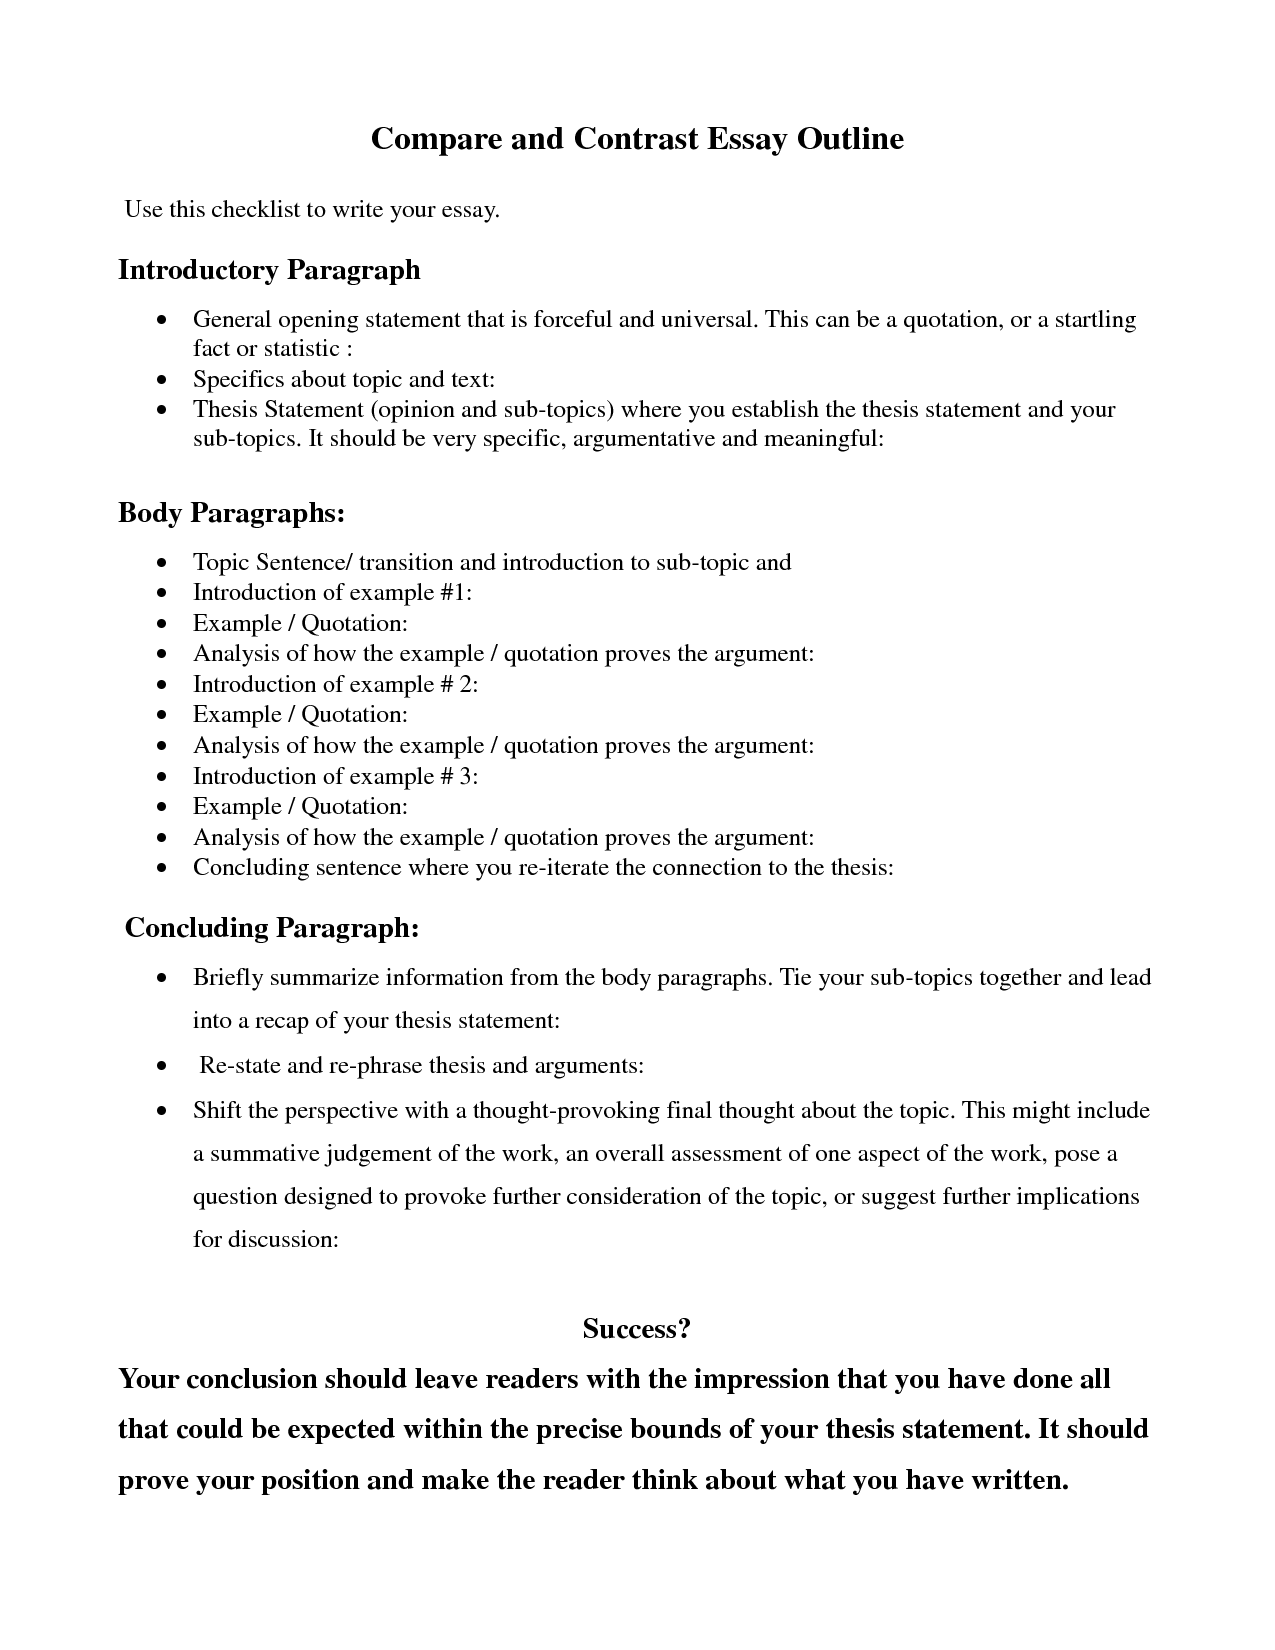 CompareContrast Essay Outline  Google Search  Education